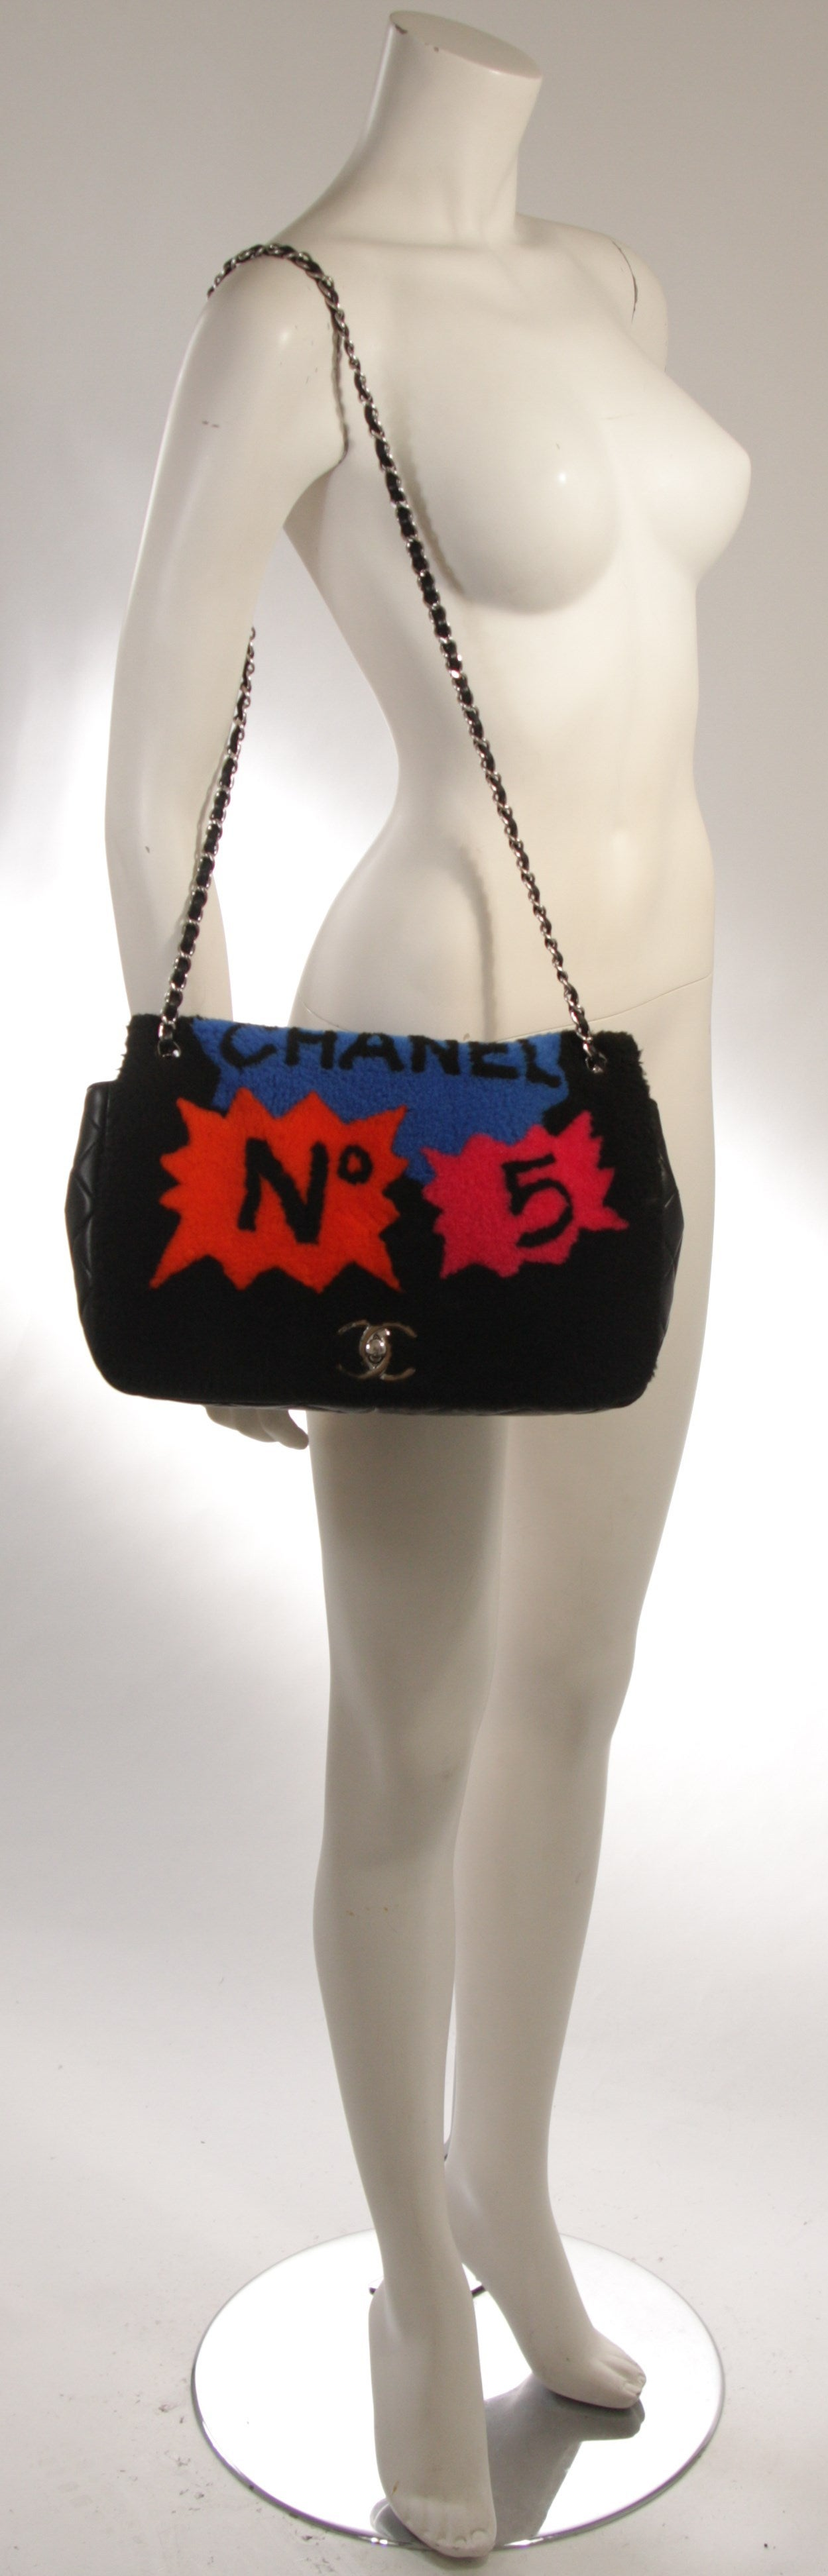 Chanel Shearling Art Pop Large Purse with Quilted Lambskin Fall 2014 10